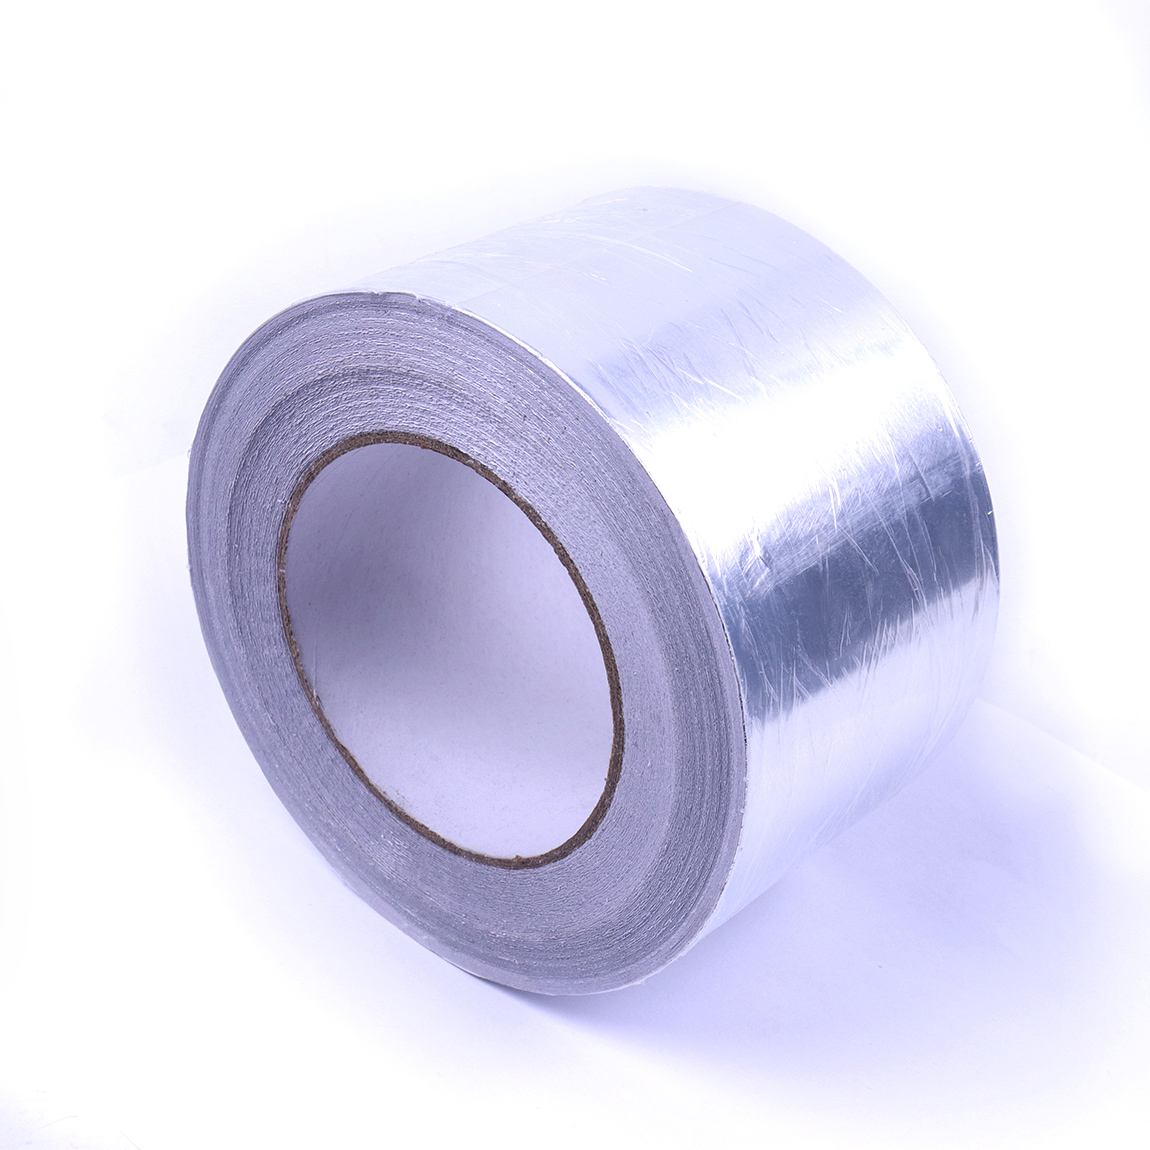 1PC 20mx75mm Aluminum Foil Tape Silver Radiation Protection Water Heat-resistant Anti-interference conductive Tape овергрип head protection tape